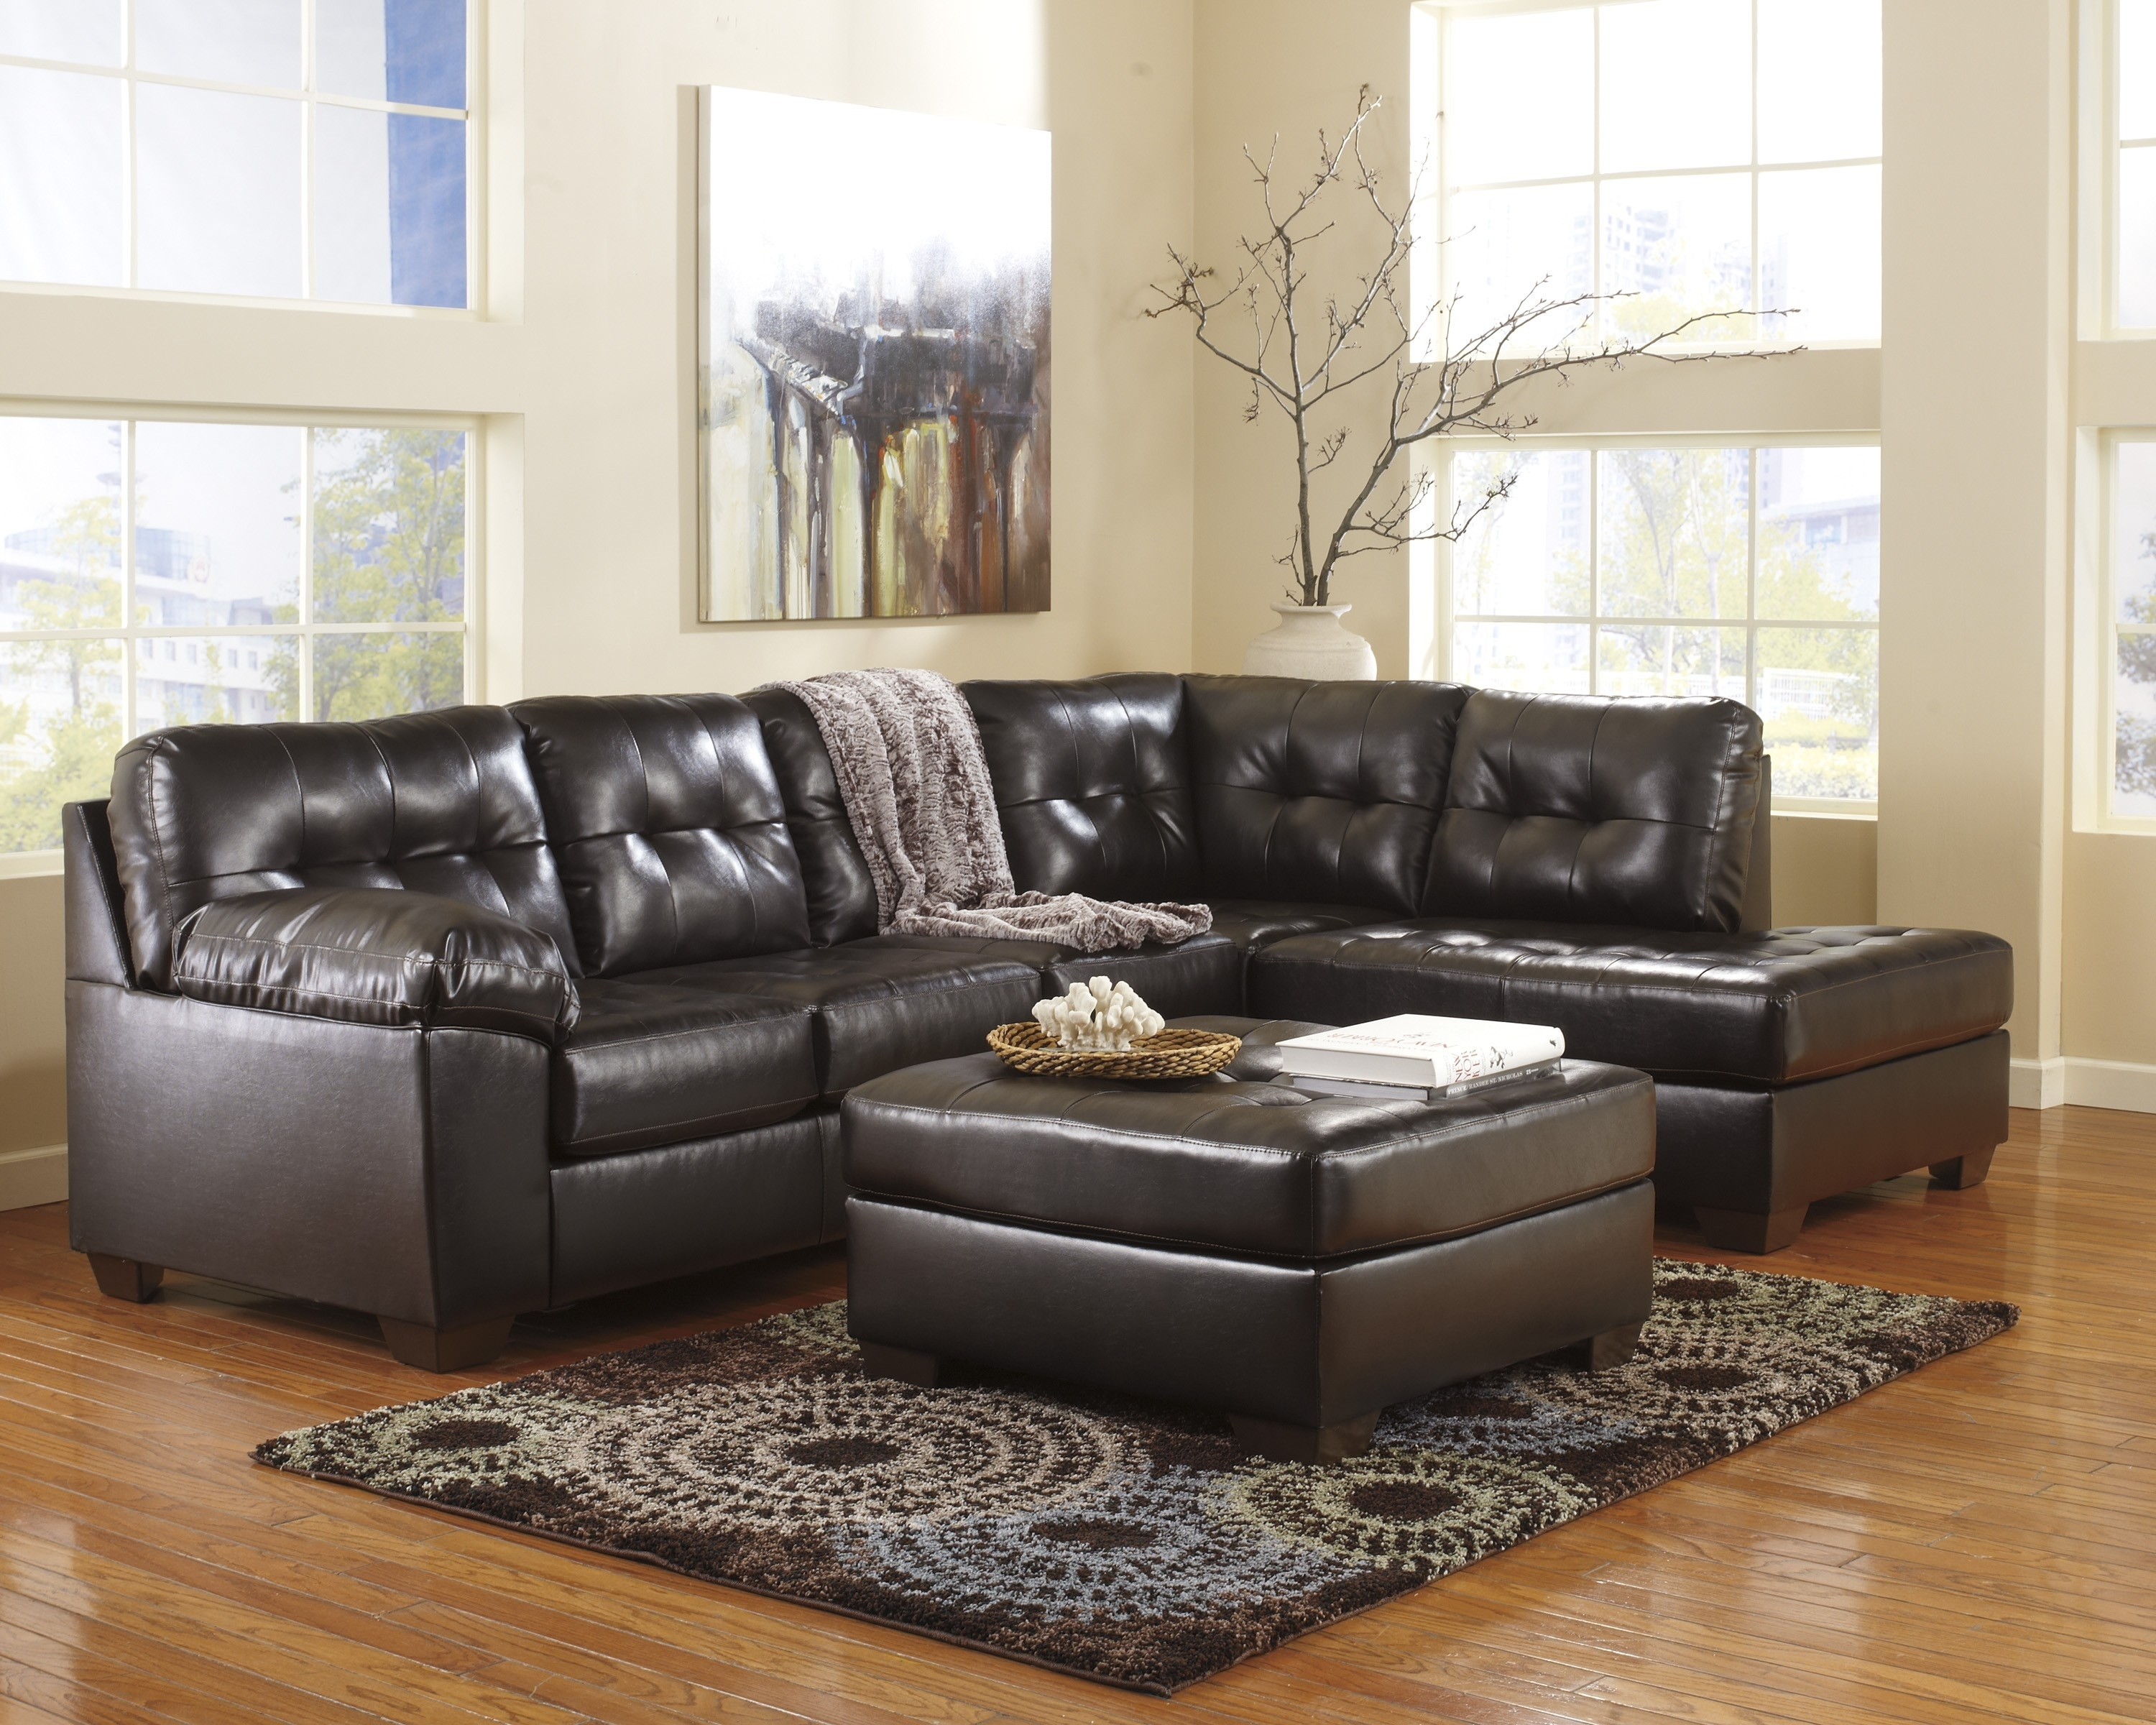 Chocolate Sectional Sofa Set With Chaise | Baci Living Room with Norfolk Chocolate 6 Piece Sectionals With Laf Chaise (Image 4 of 30)